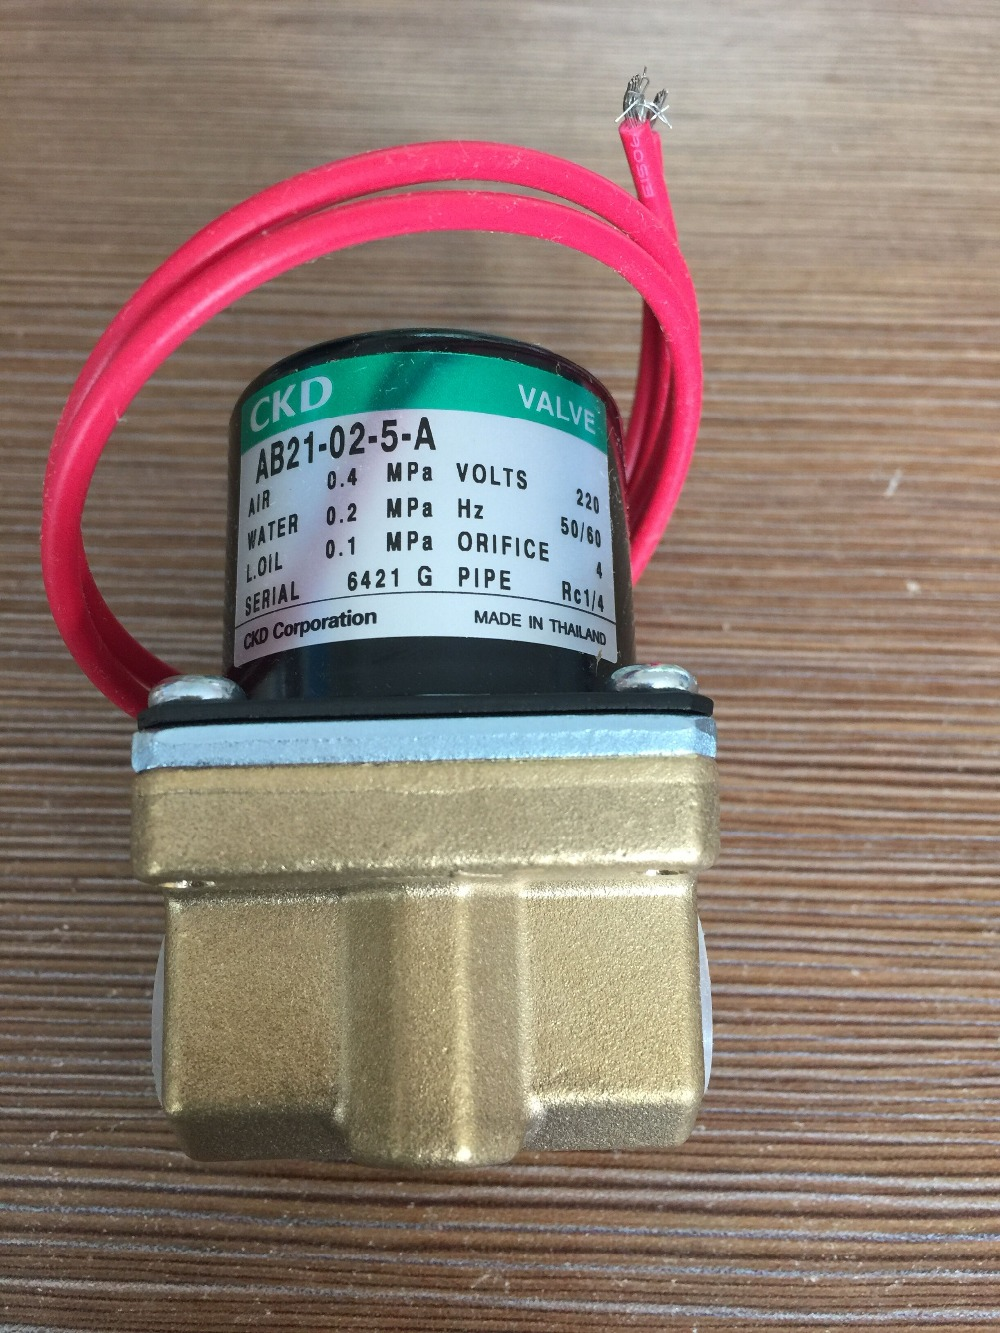 CKD solenoid valve AB21-02-5-A-AC220V Direct acting 2 port solenoid valve (general purpose valve) ckd solenoid valve ab21 01 2 dc24v direct acting 2 port solenoid valve general purpose valve